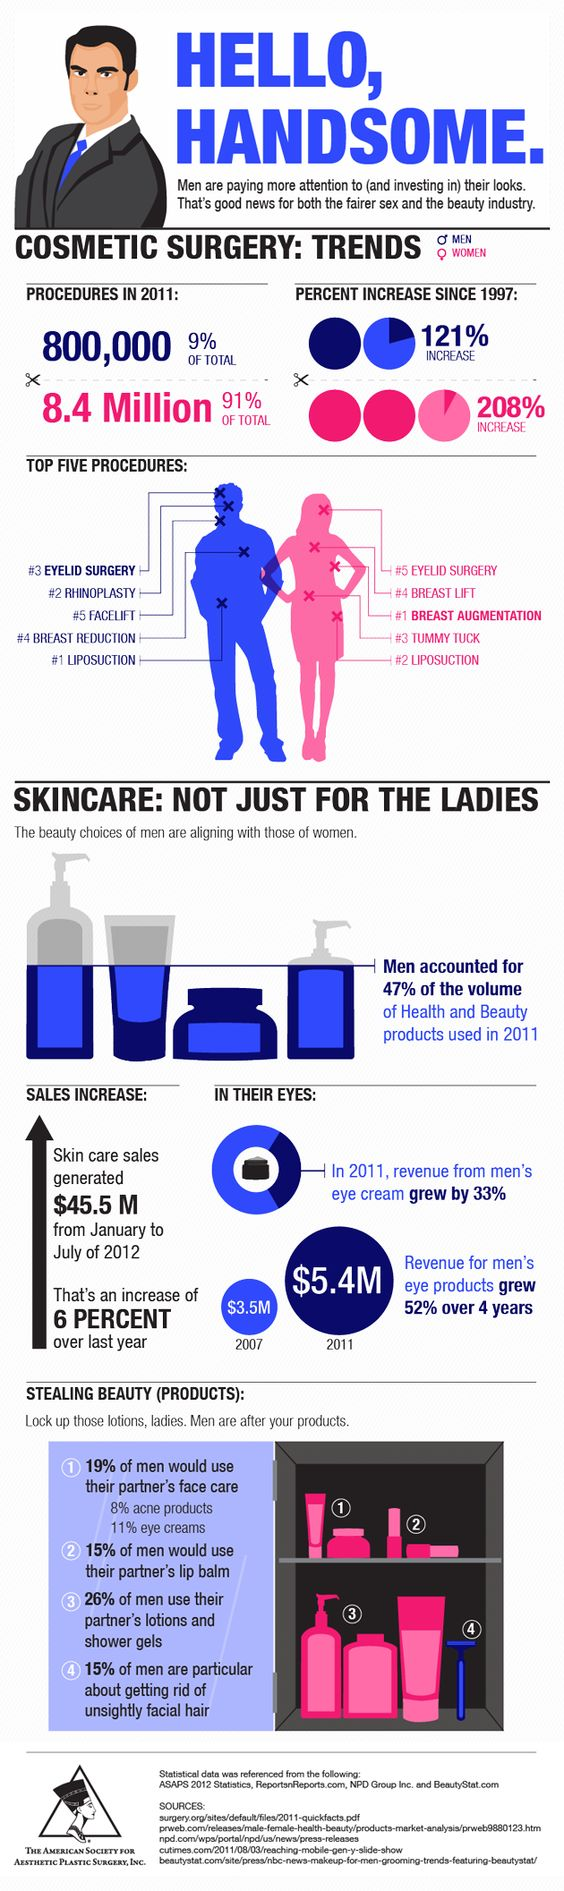 Hello, handsome: Male plastic surgery and skincare trends [INFOGRAPHIC]